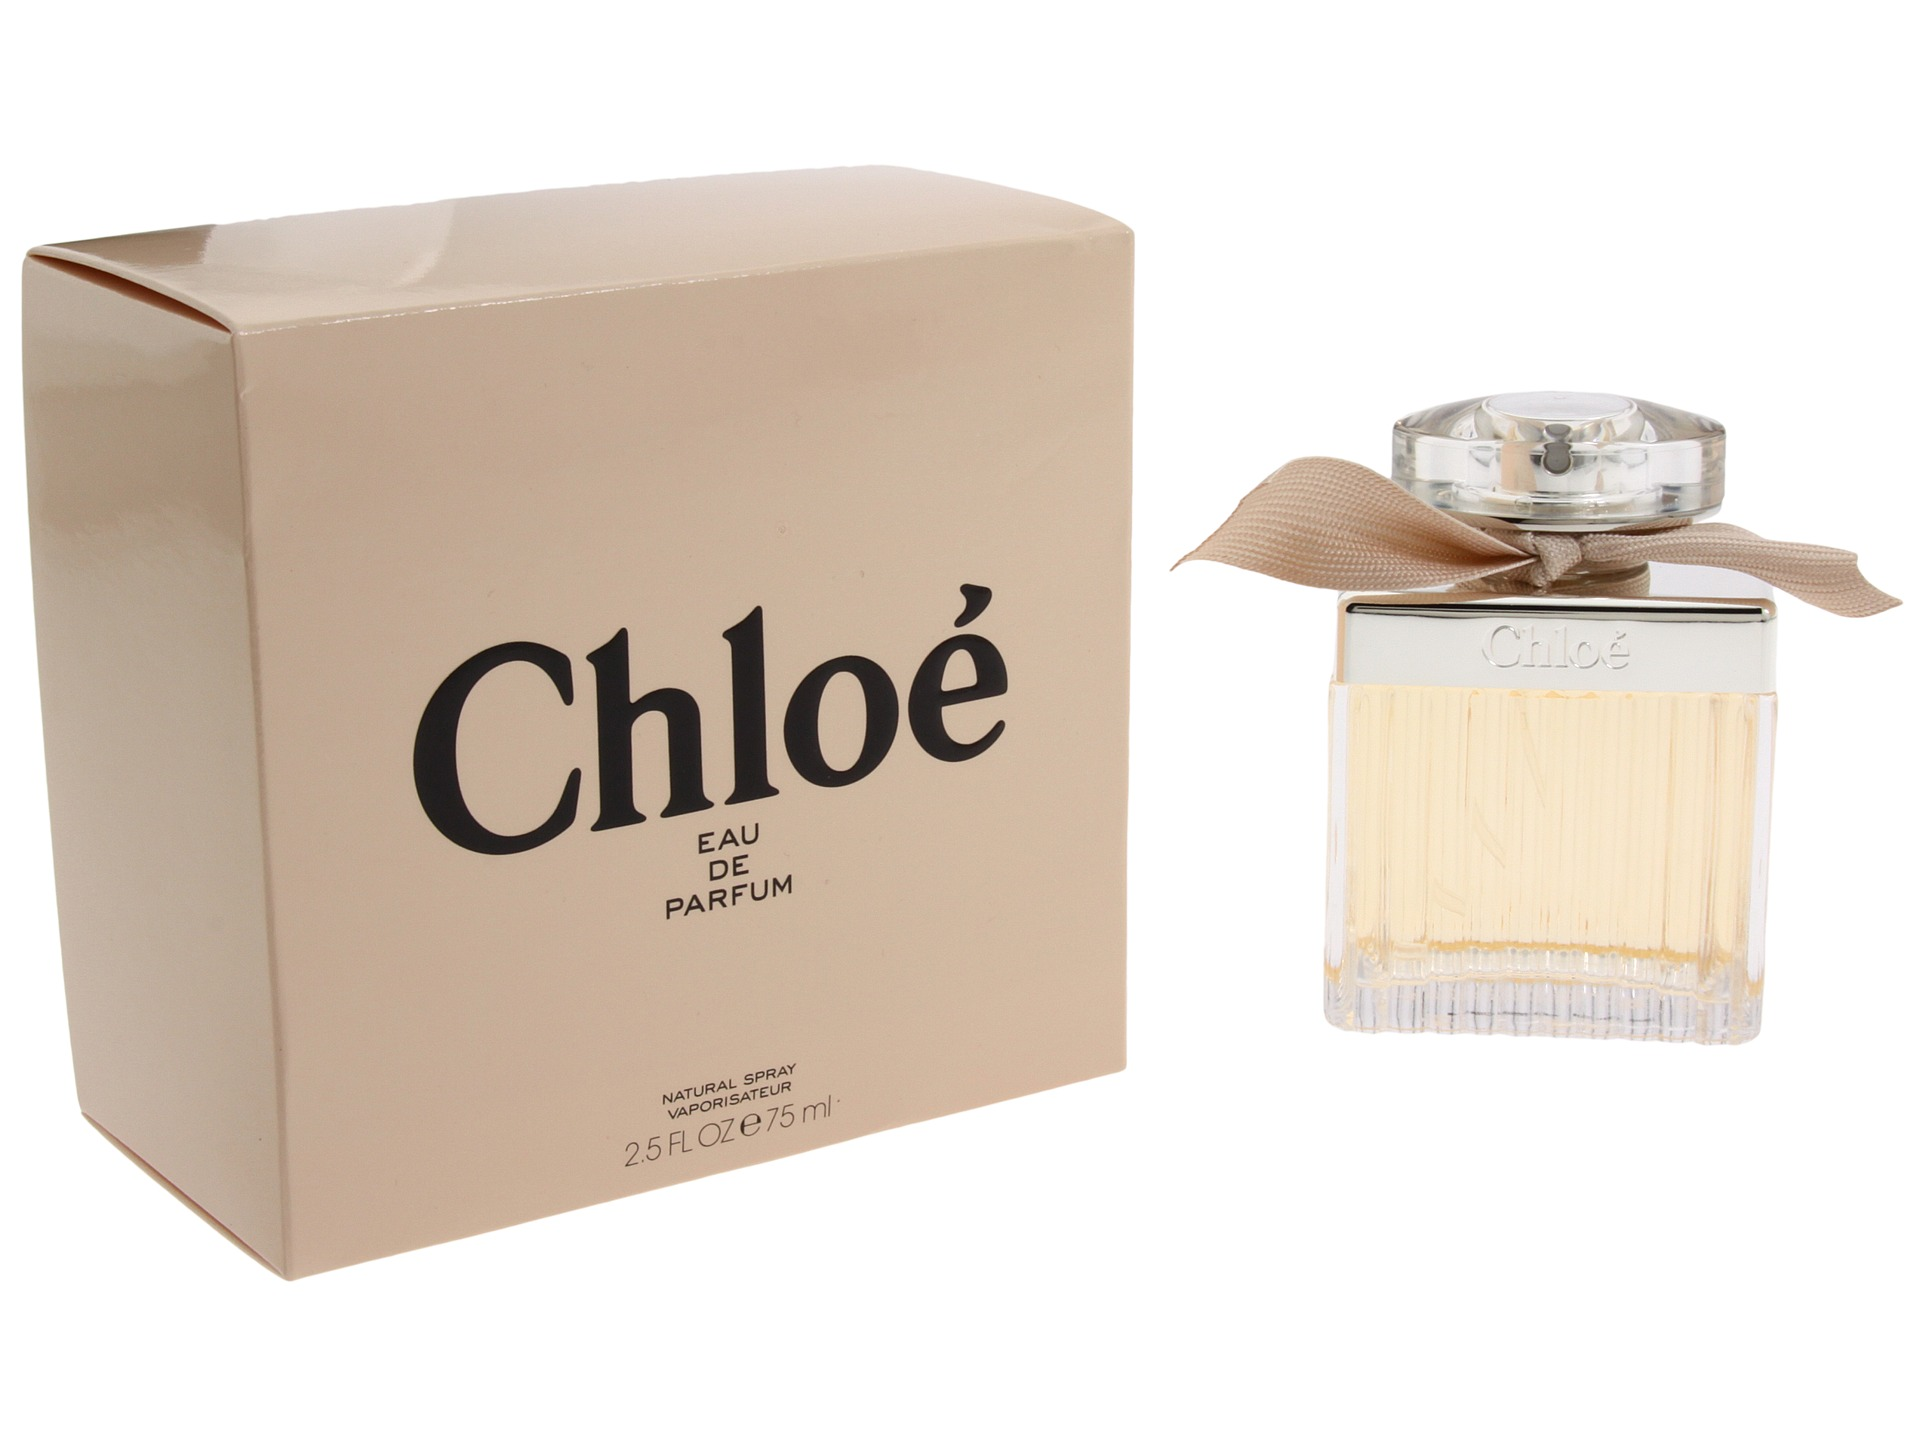 chloe chloe eau de parfum spray 2 5 oz shipped free at zappos. Black Bedroom Furniture Sets. Home Design Ideas